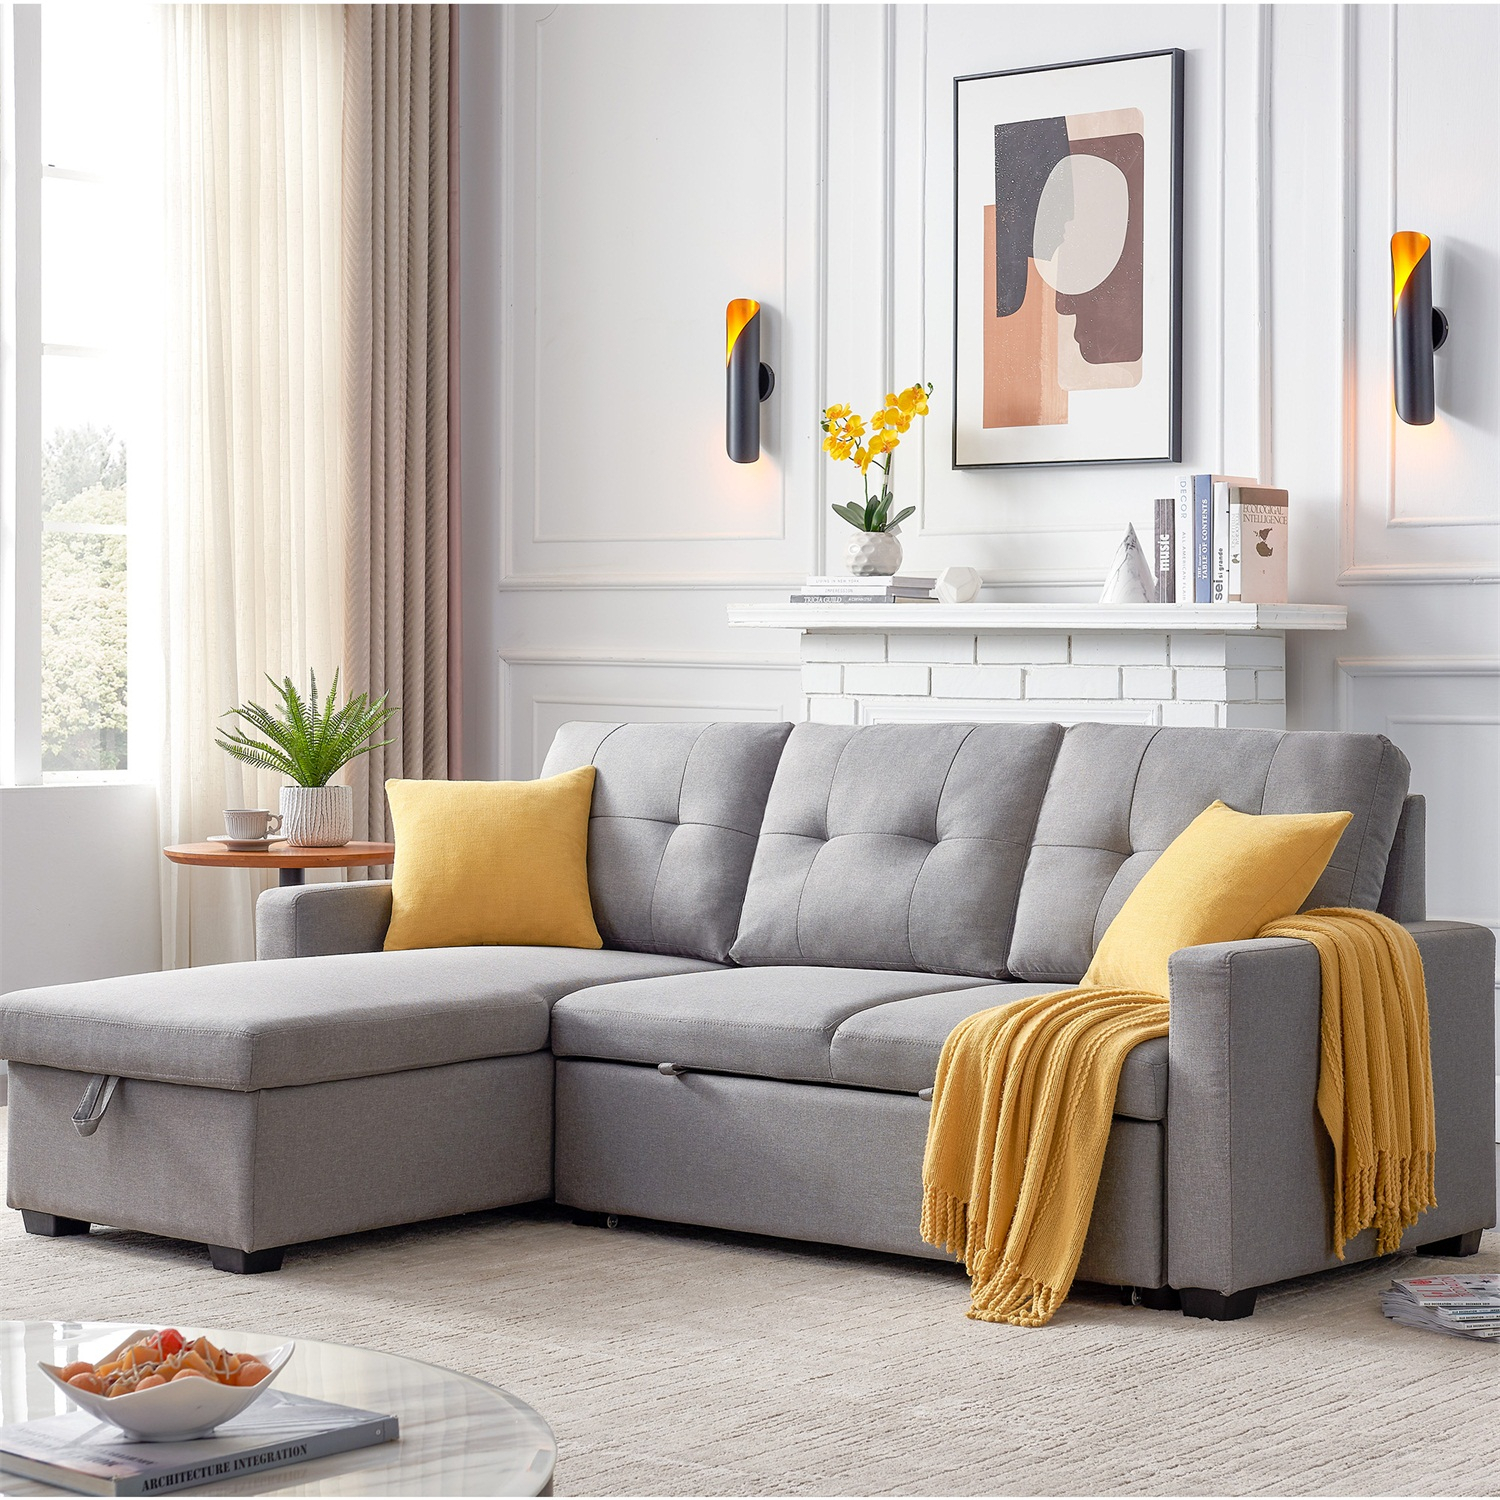 """82"""" Reversible Sofa Bed,Pull Out Sleeper Sectional Sofa Inside Sectional Sofas With Storage (View 6 of 15)"""